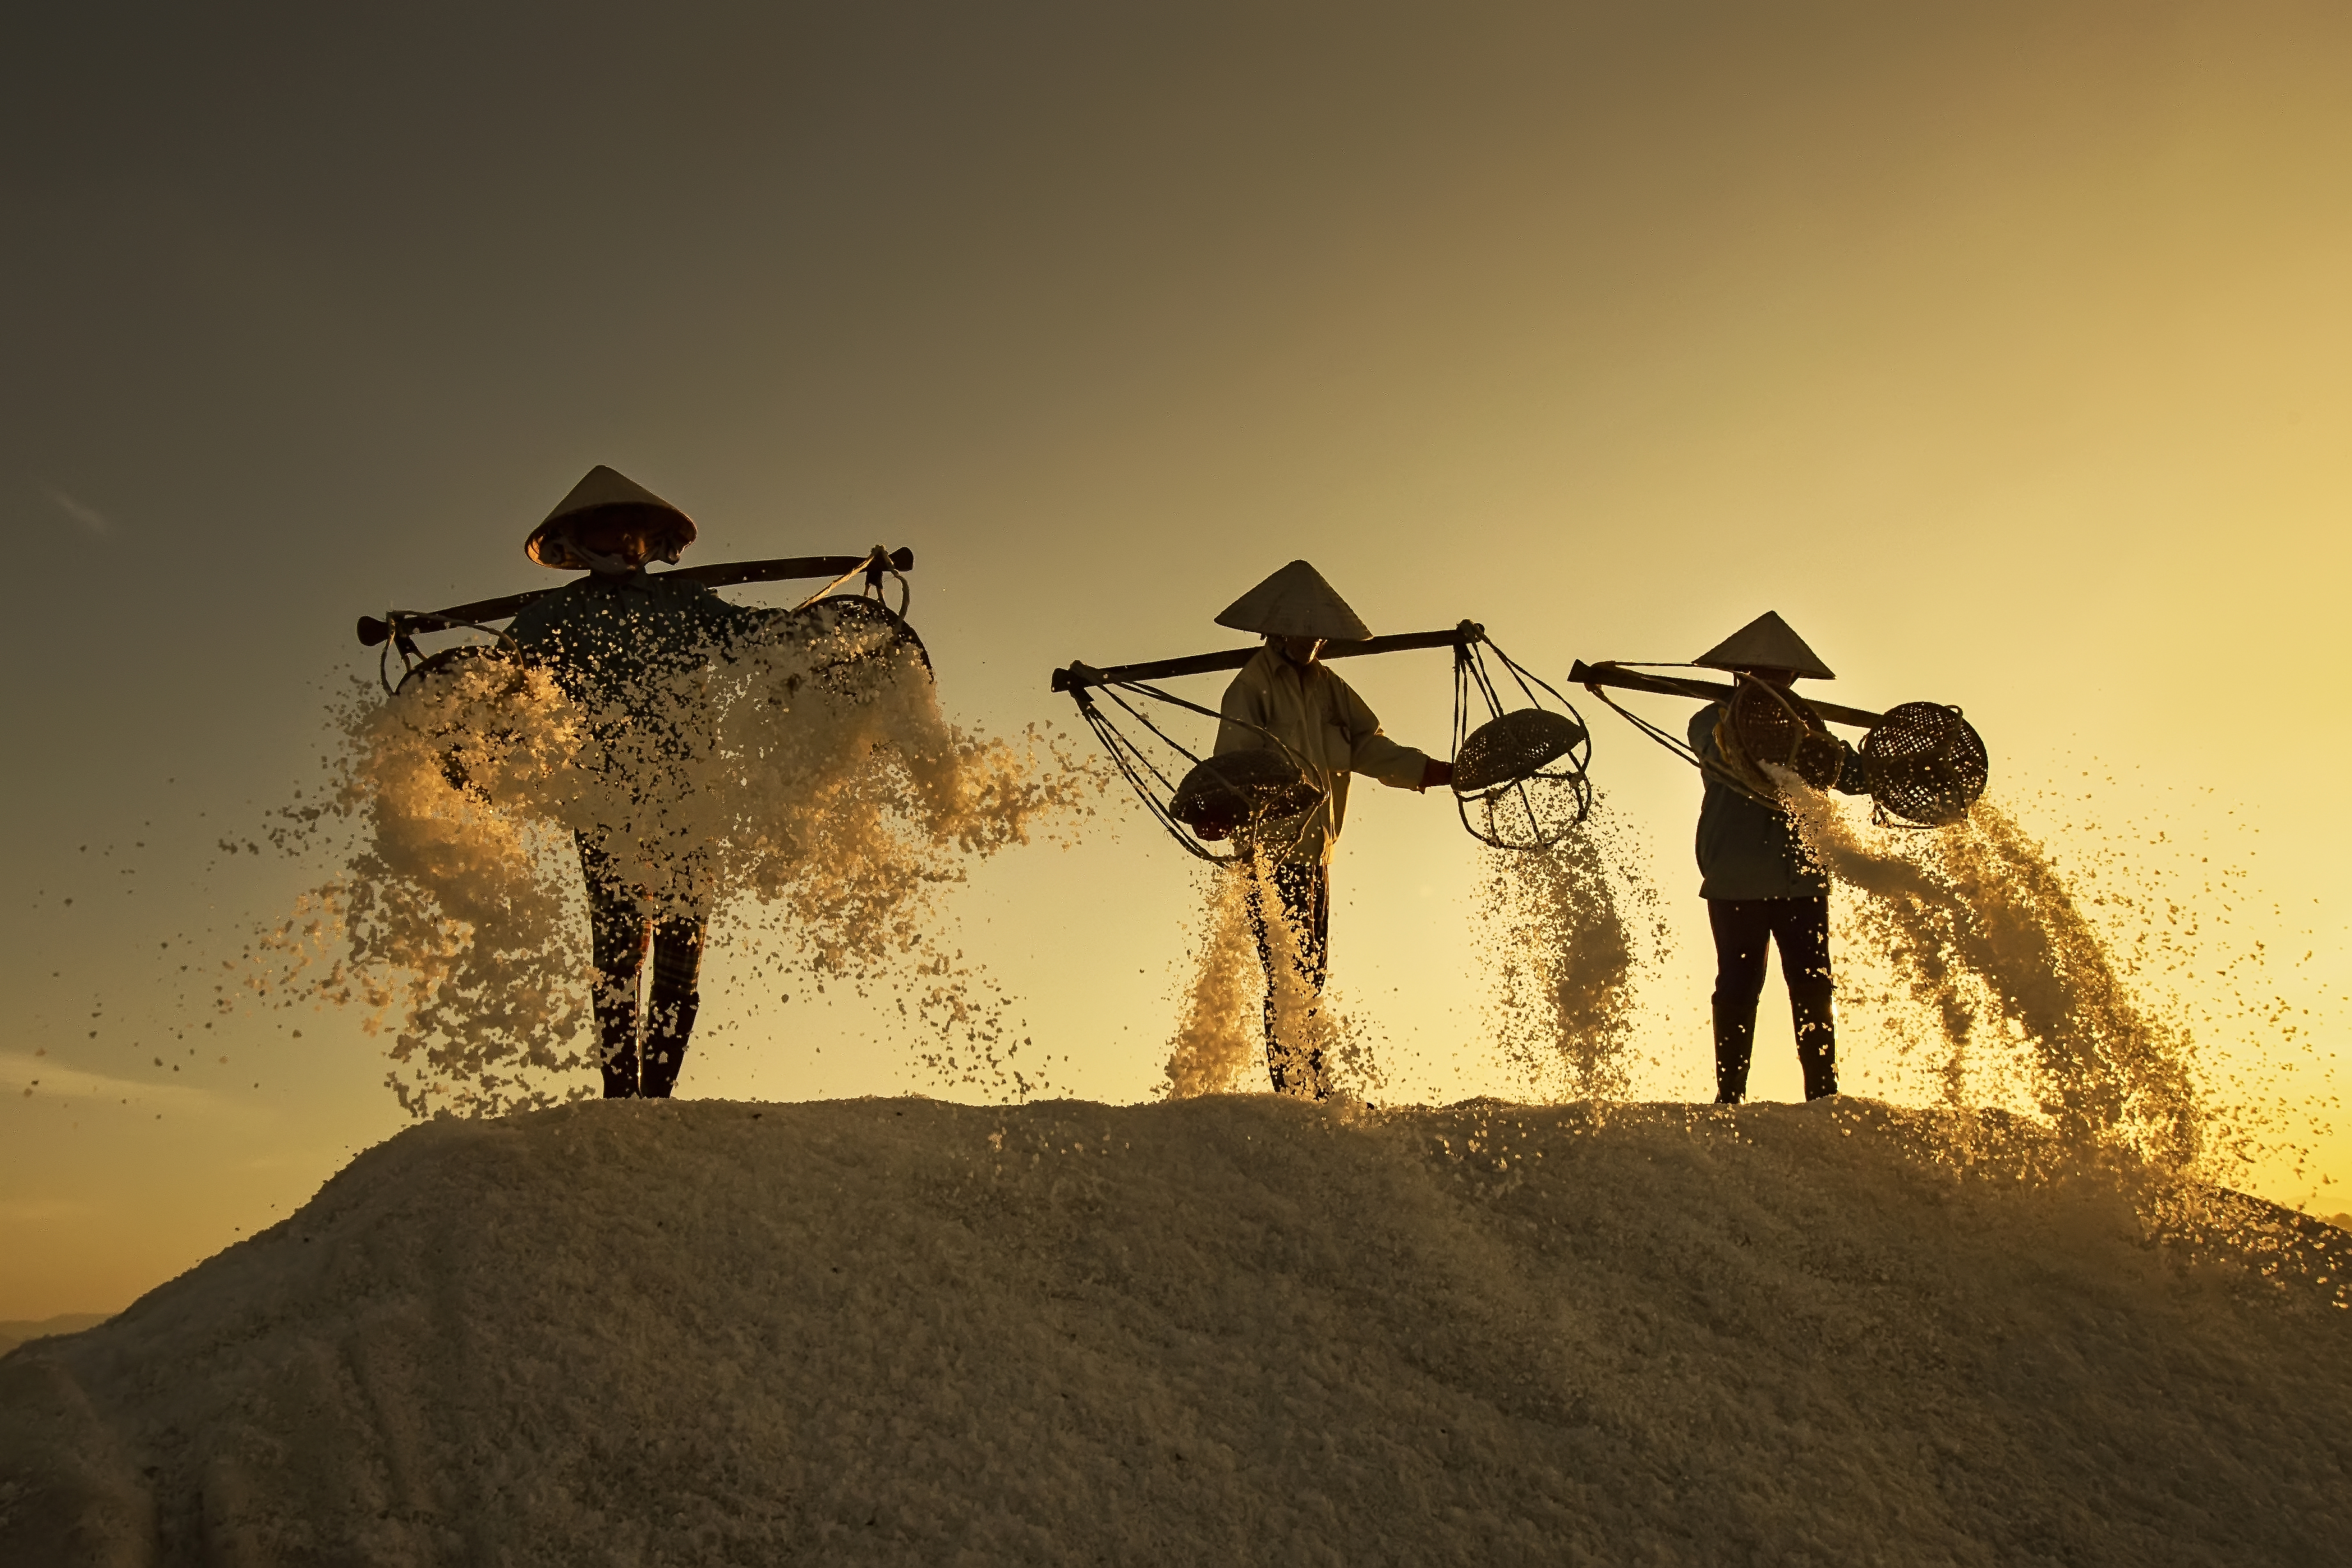 This photo capturing salt workers in Vietnam by Nese Ari was featured on The Daily Telegraph